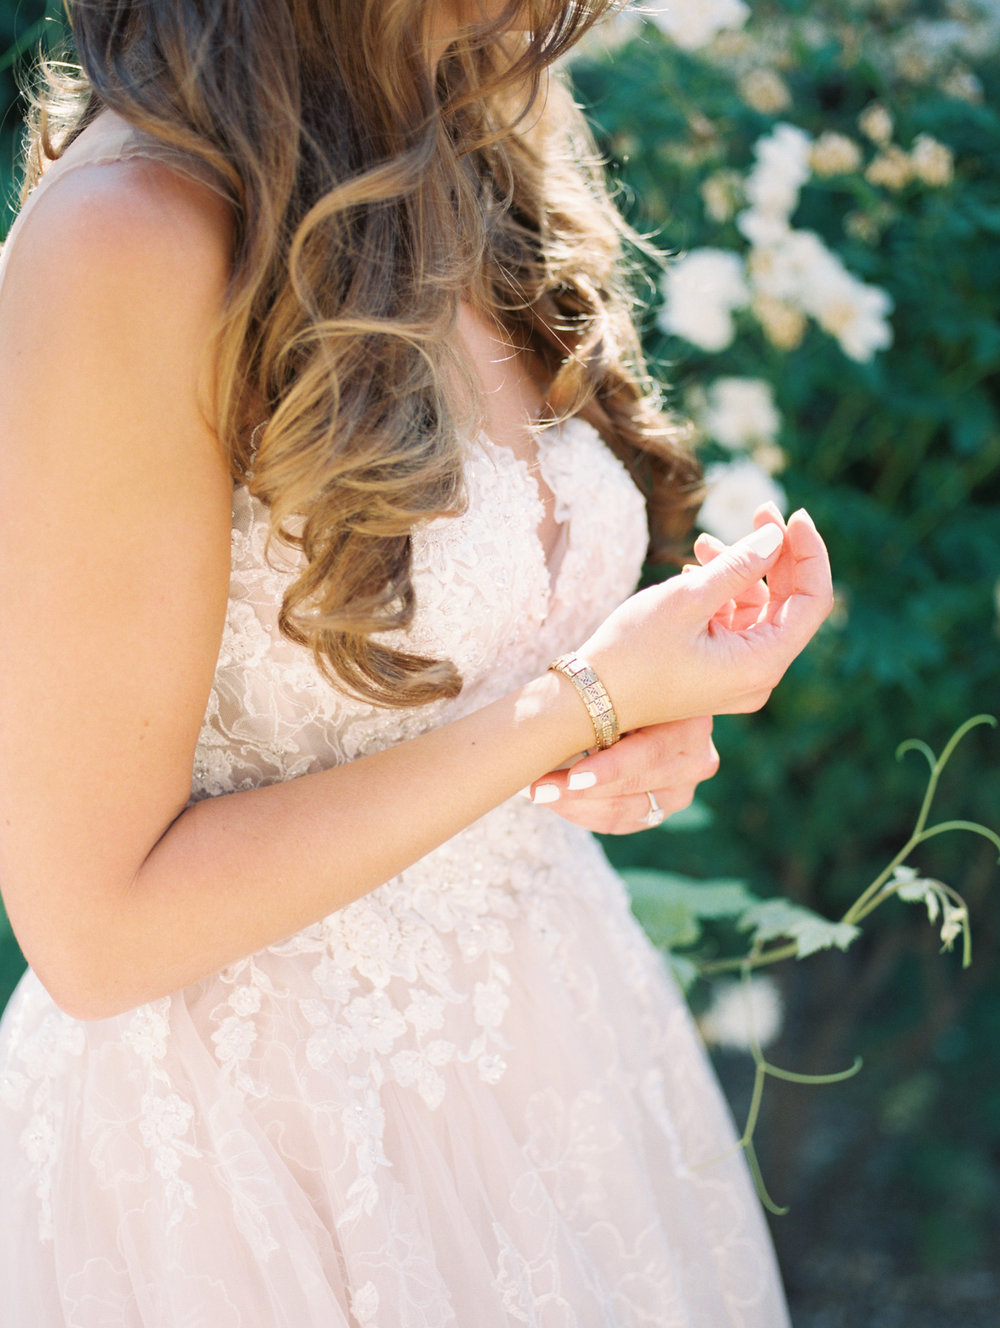 Bride wearing her grandmothers bracelet | Harrison & Jocelyne's gorgeous Temecula wedding at Wiens Family Cellars captured by Betsy & John Photography